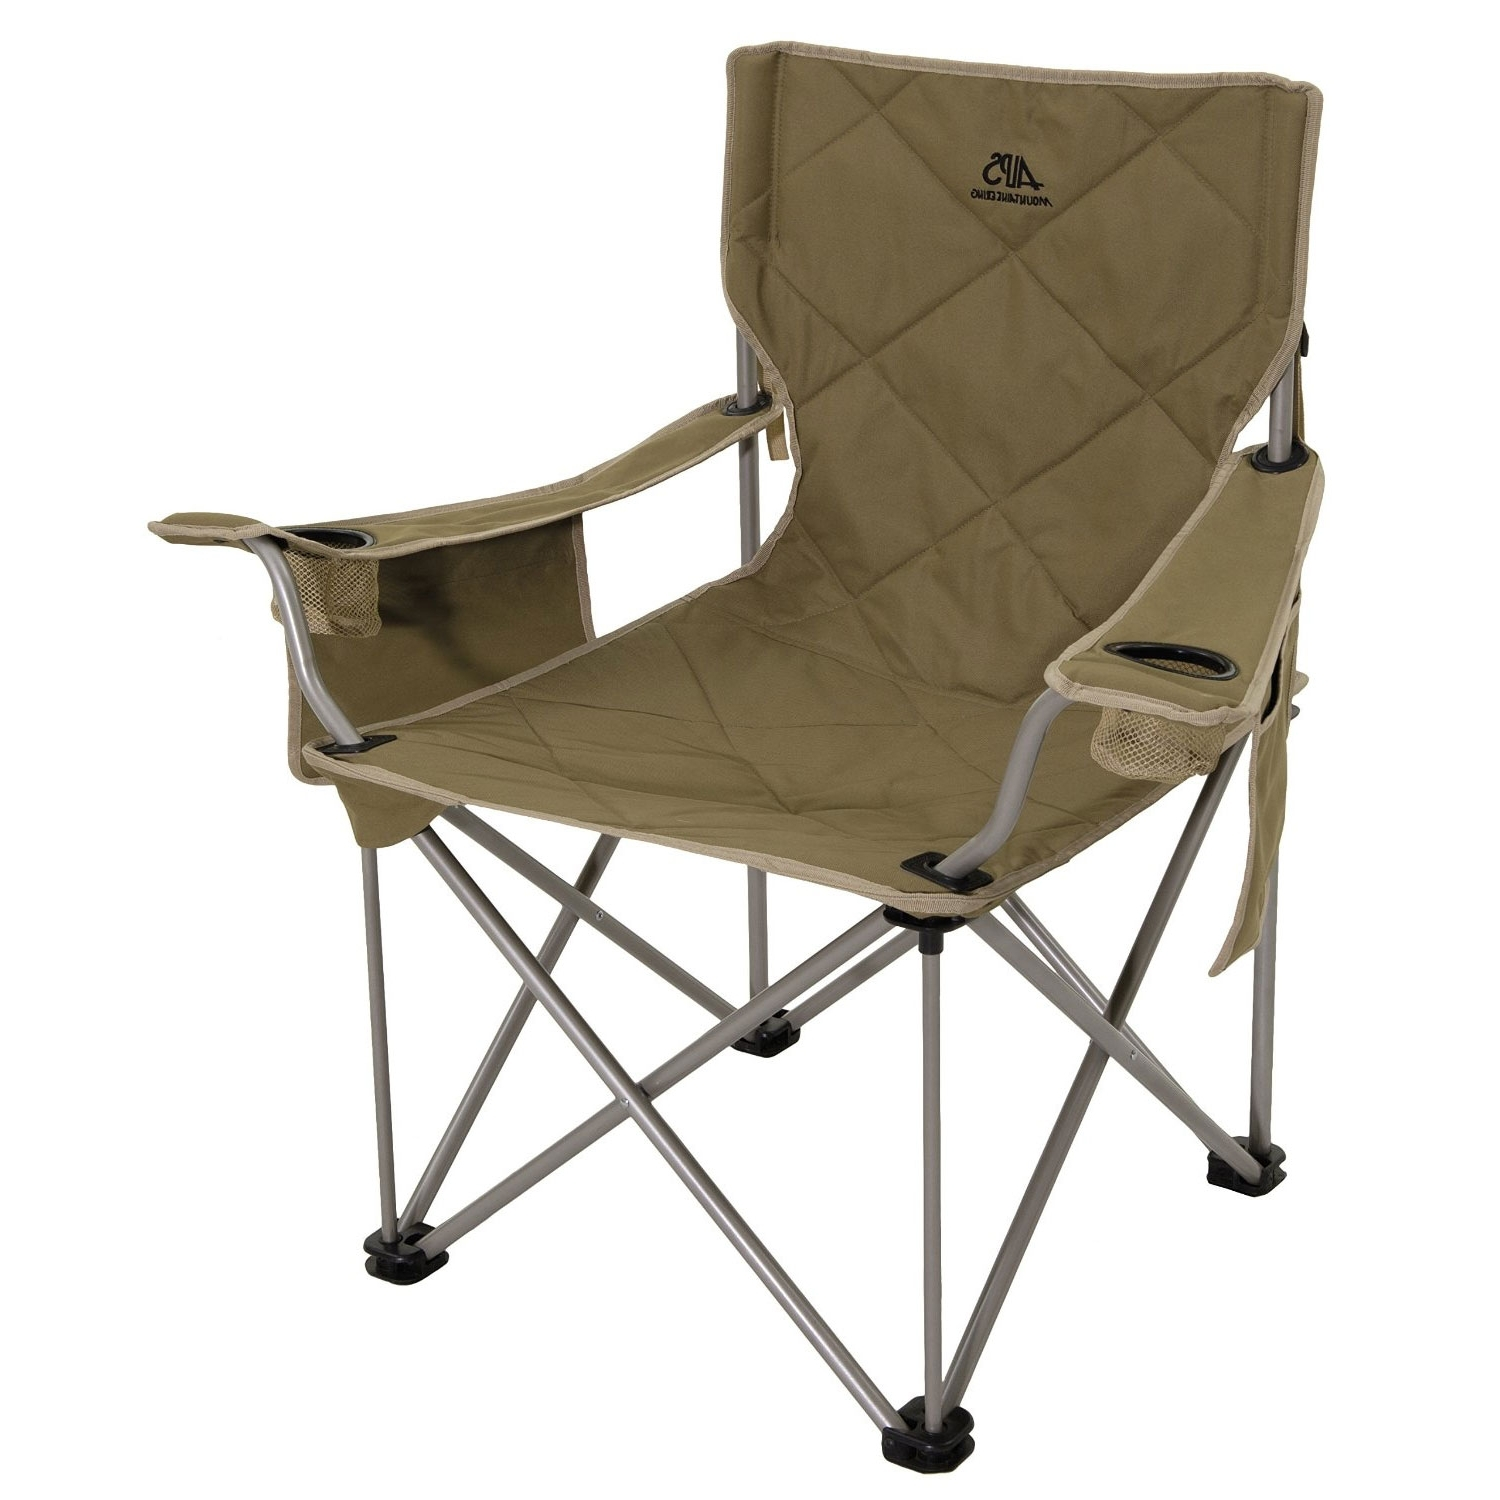 Heavy Duty Chaise Lounge Chairs Regarding Preferred Lounge Chair : Reclining Chair Extra Large Heavy Duty Folding (View 8 of 15)